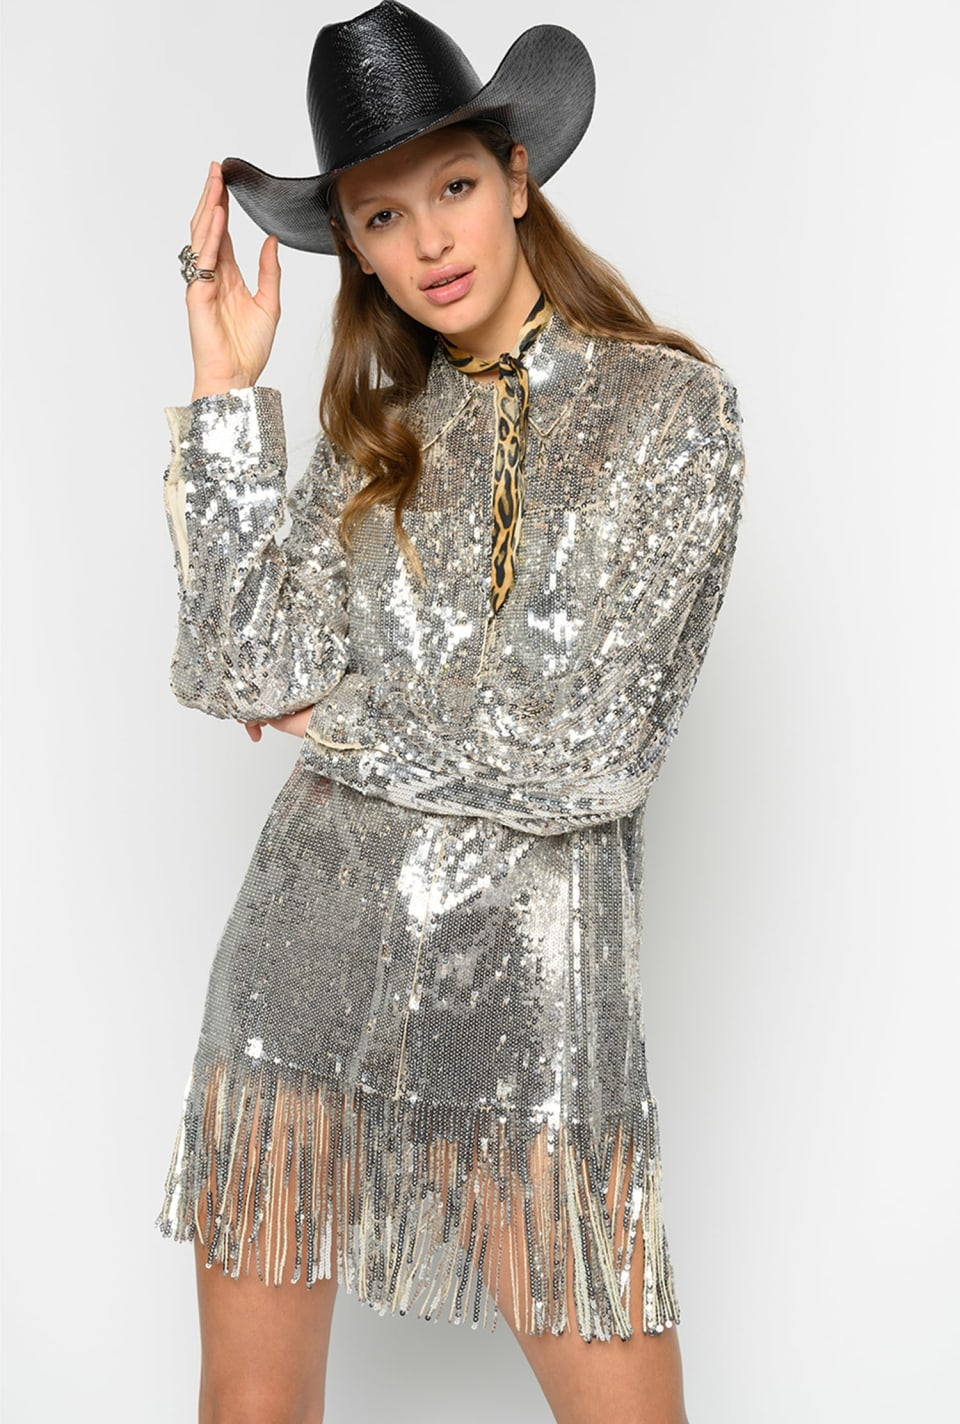 Shirt-style jacket in full sequins - Pinko